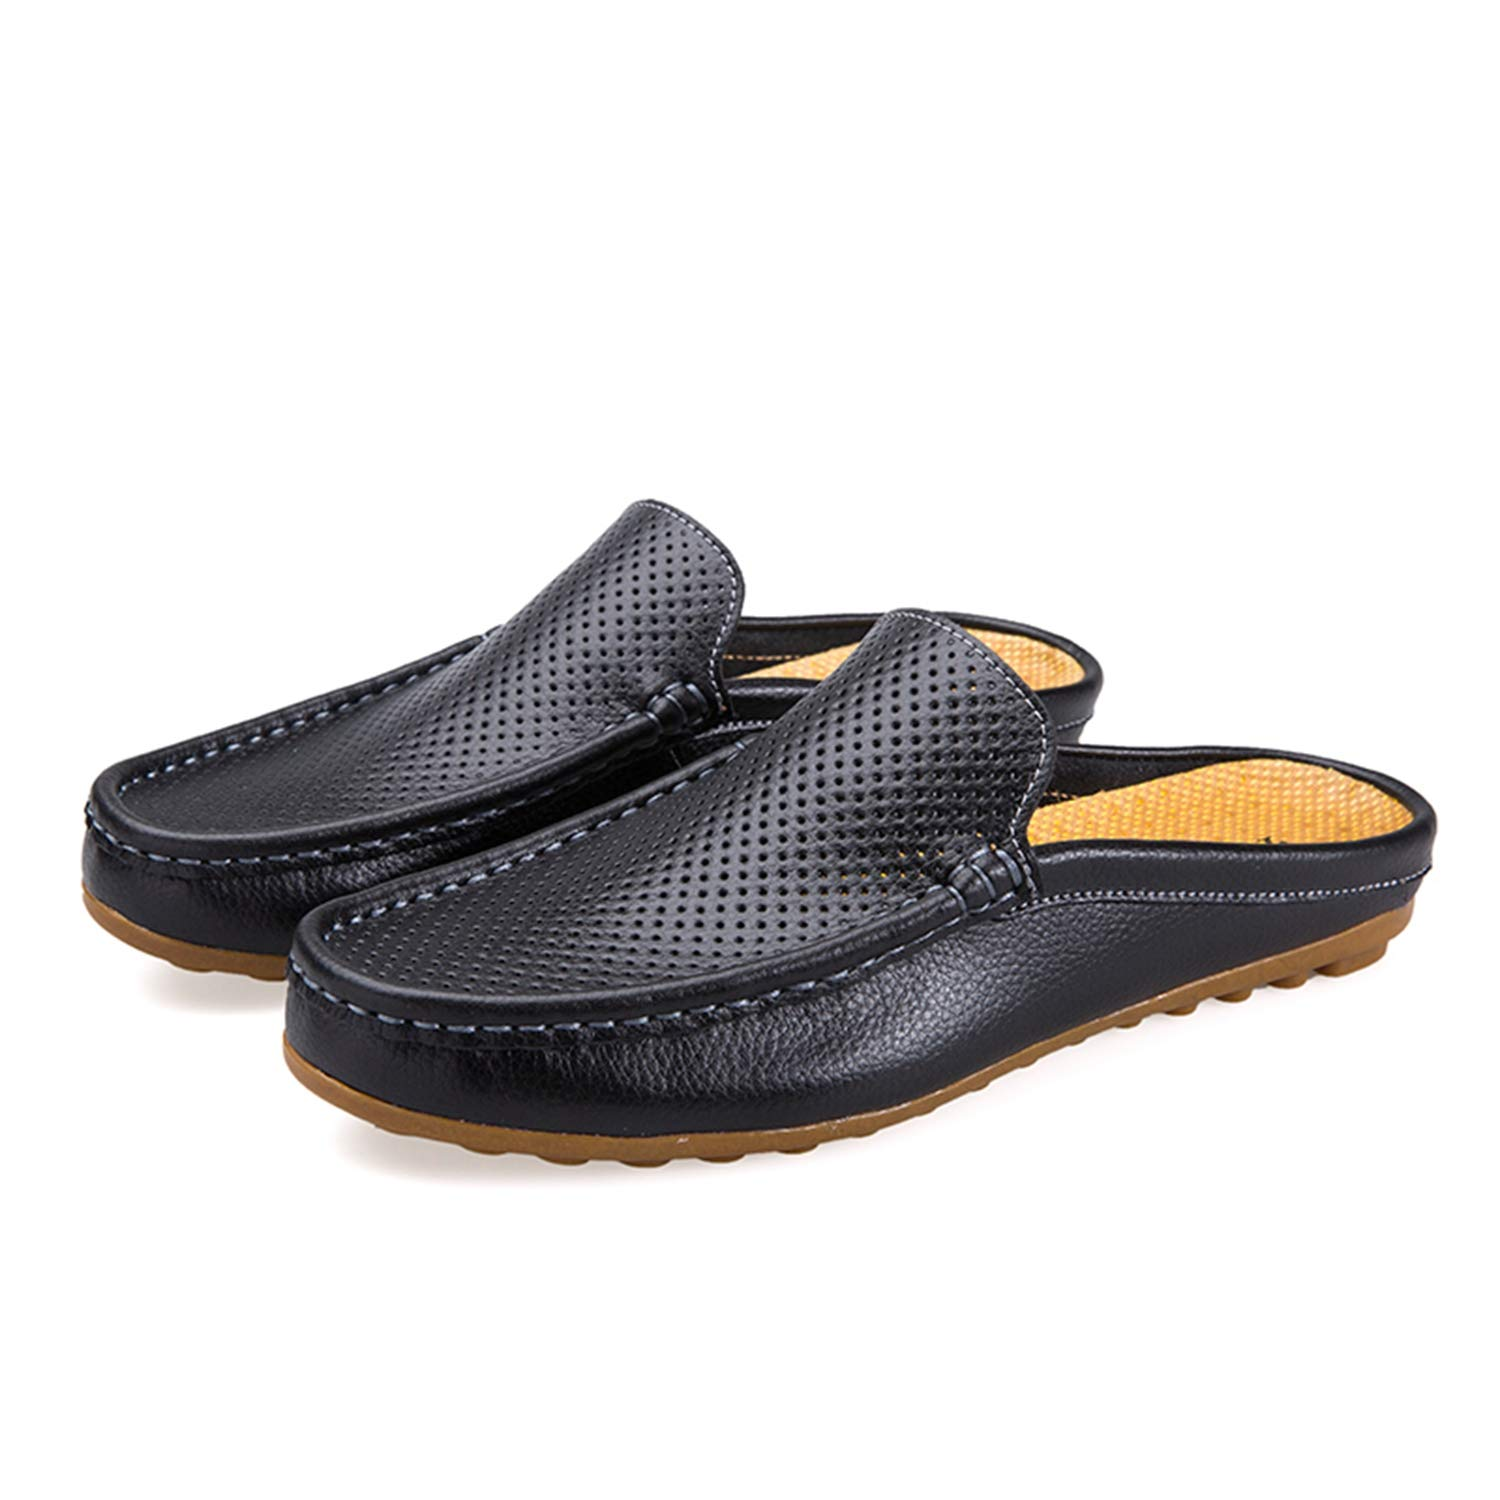 Amazon.com   Yincoo Summer Mens Half Shoes Casual Loafers Genuine Leather Hollow Out Breathable Shoes Slip on Moccasins   Loafers & Slip-Ons